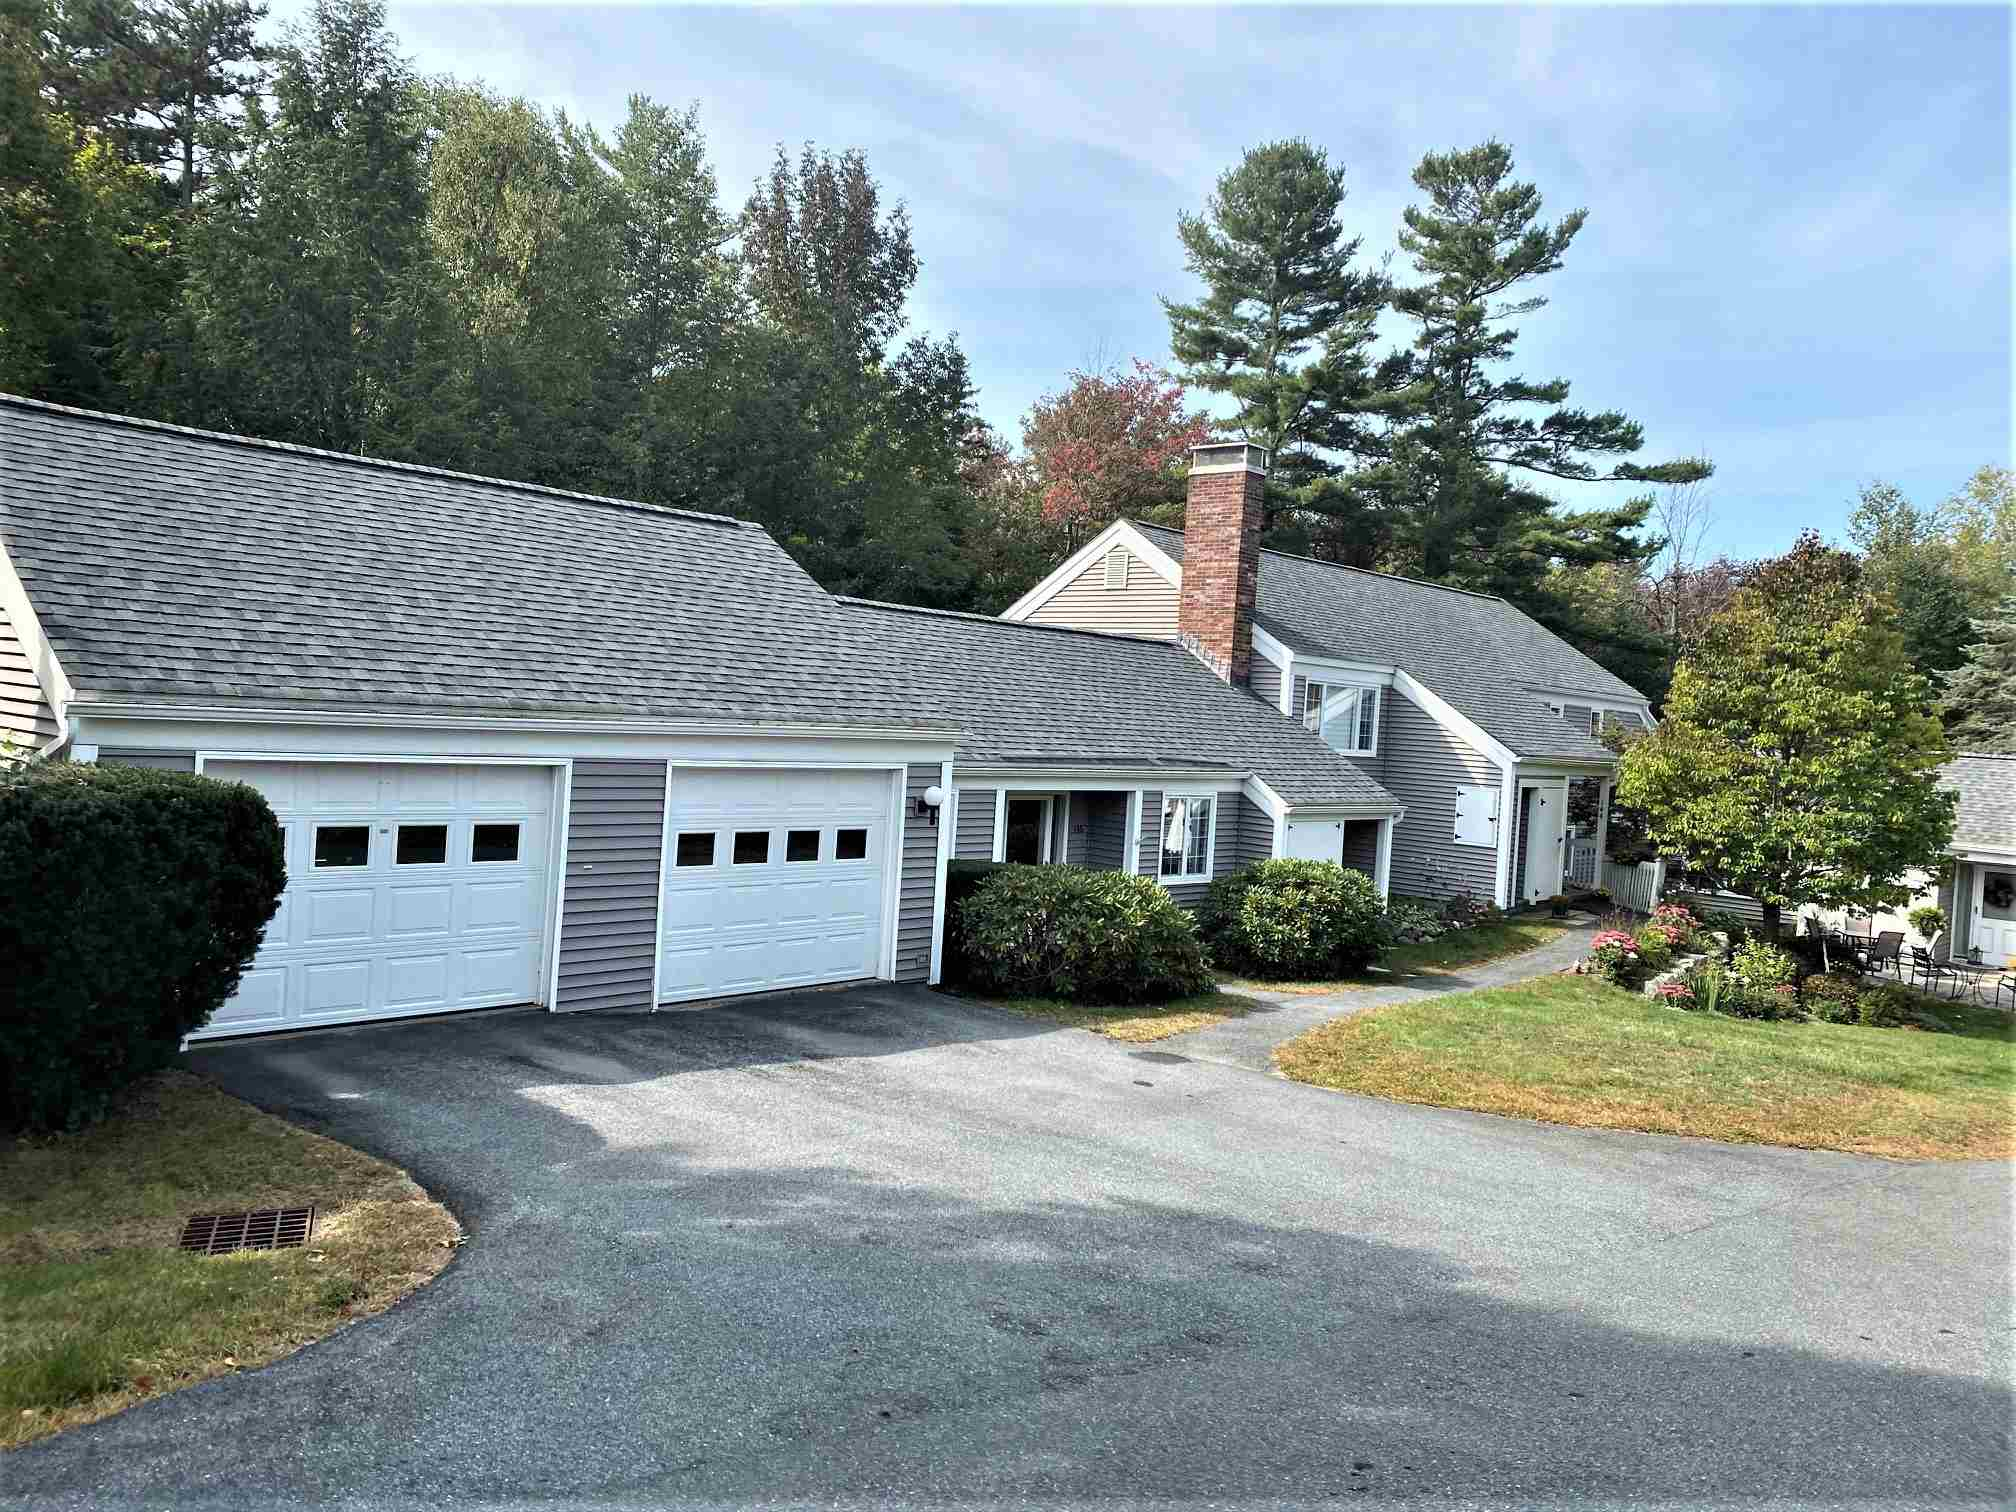 MLS 4831009: 145 Hilltop Place, New London NH